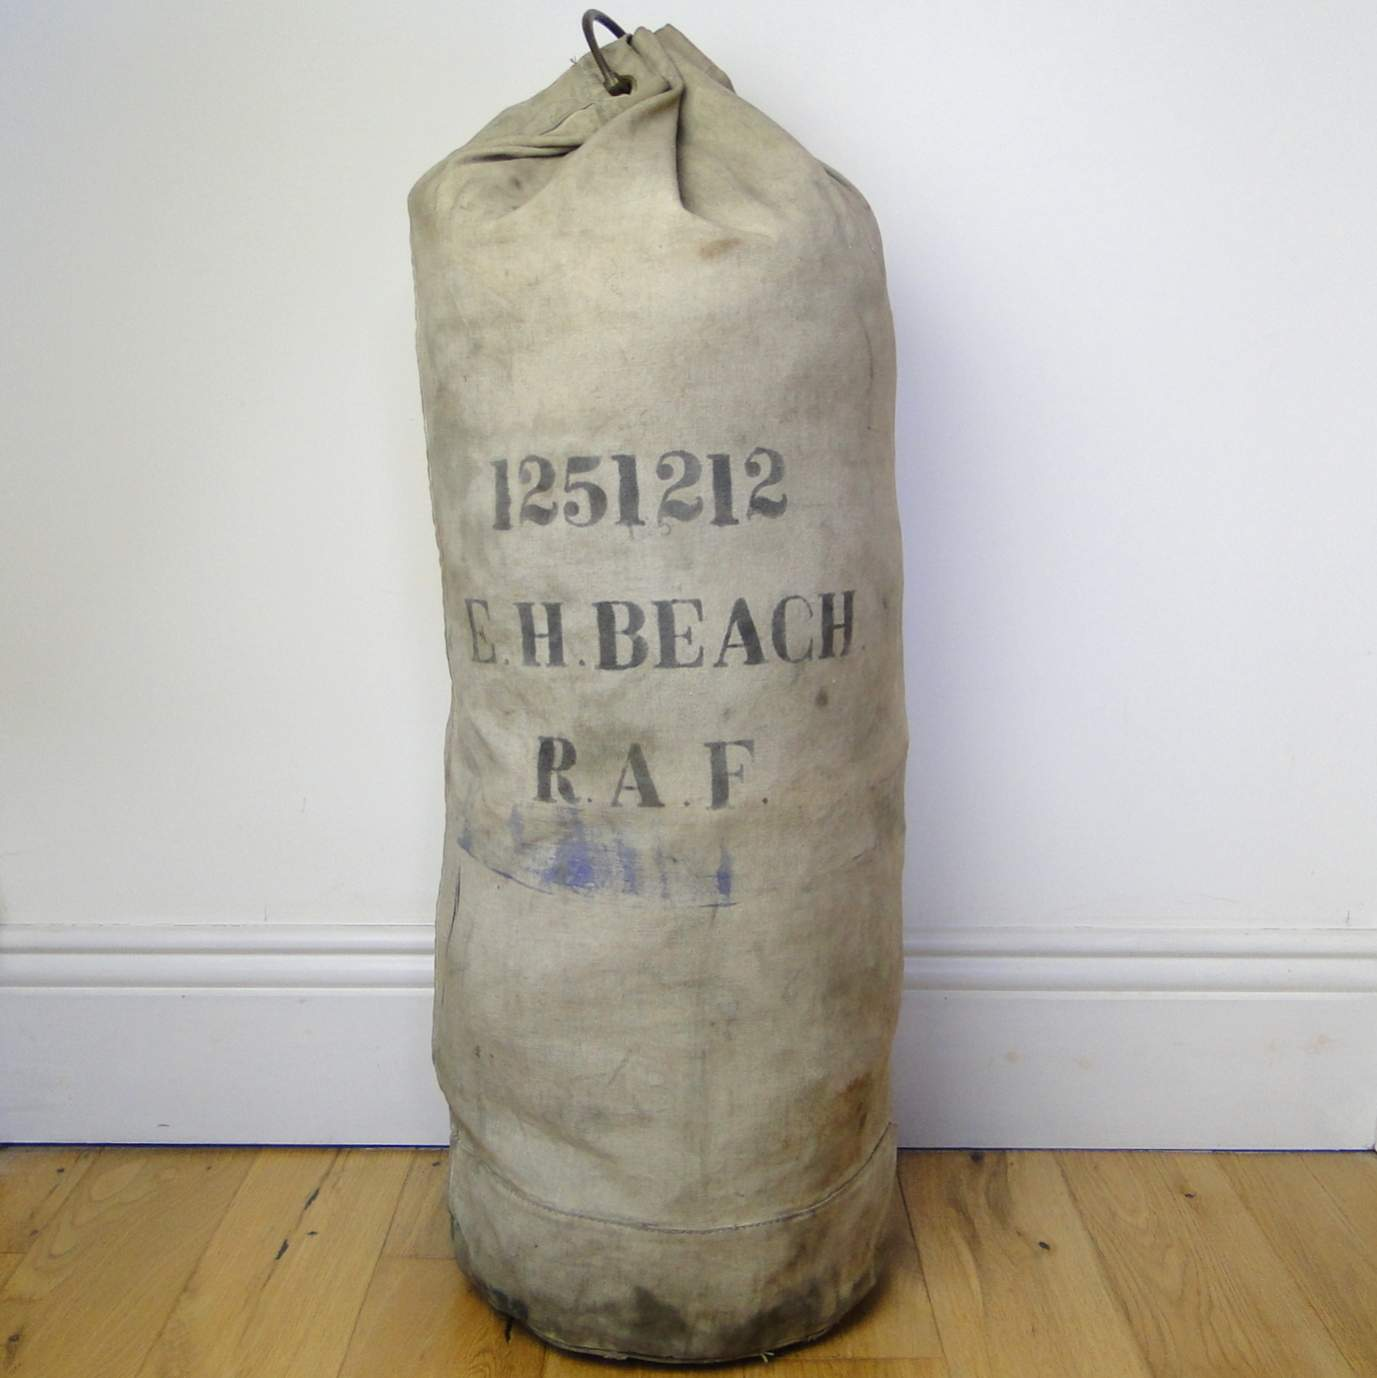 WW2 RAF Kit Bag - E H Beach  Air Ministry 1940  | Sõja ajaloo